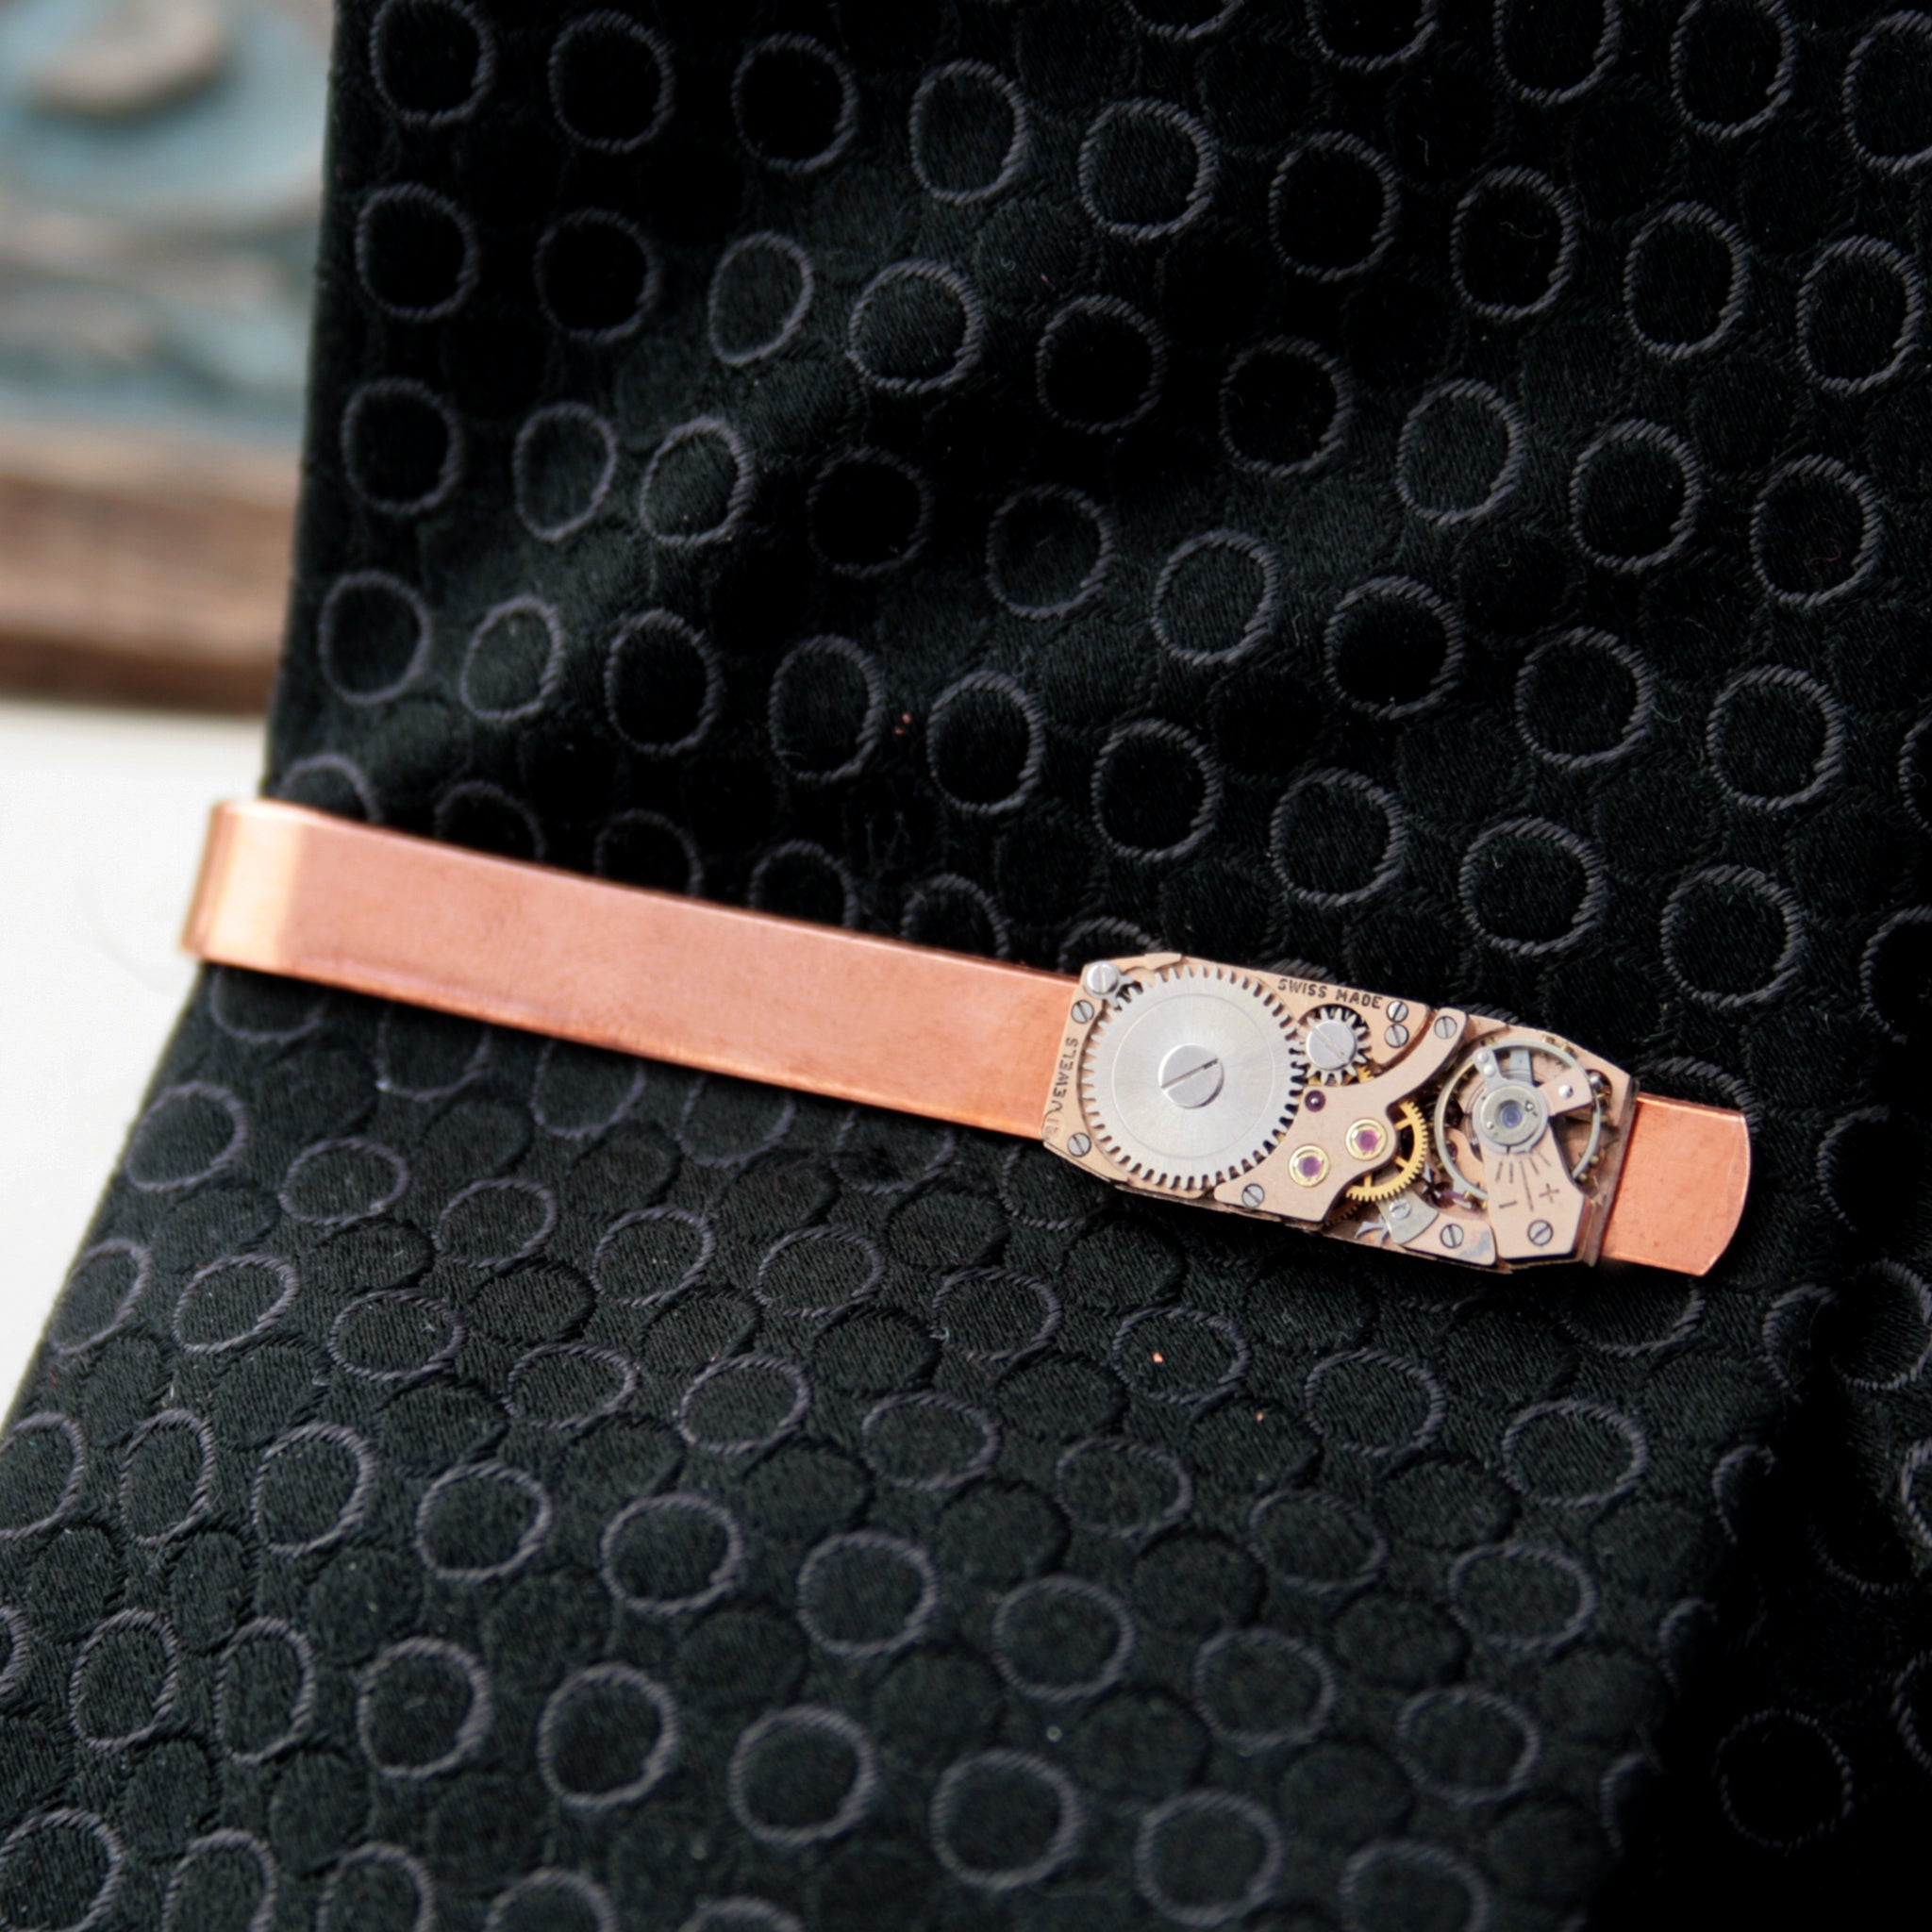 Copper Tie Clip with Steampunk Watch Work